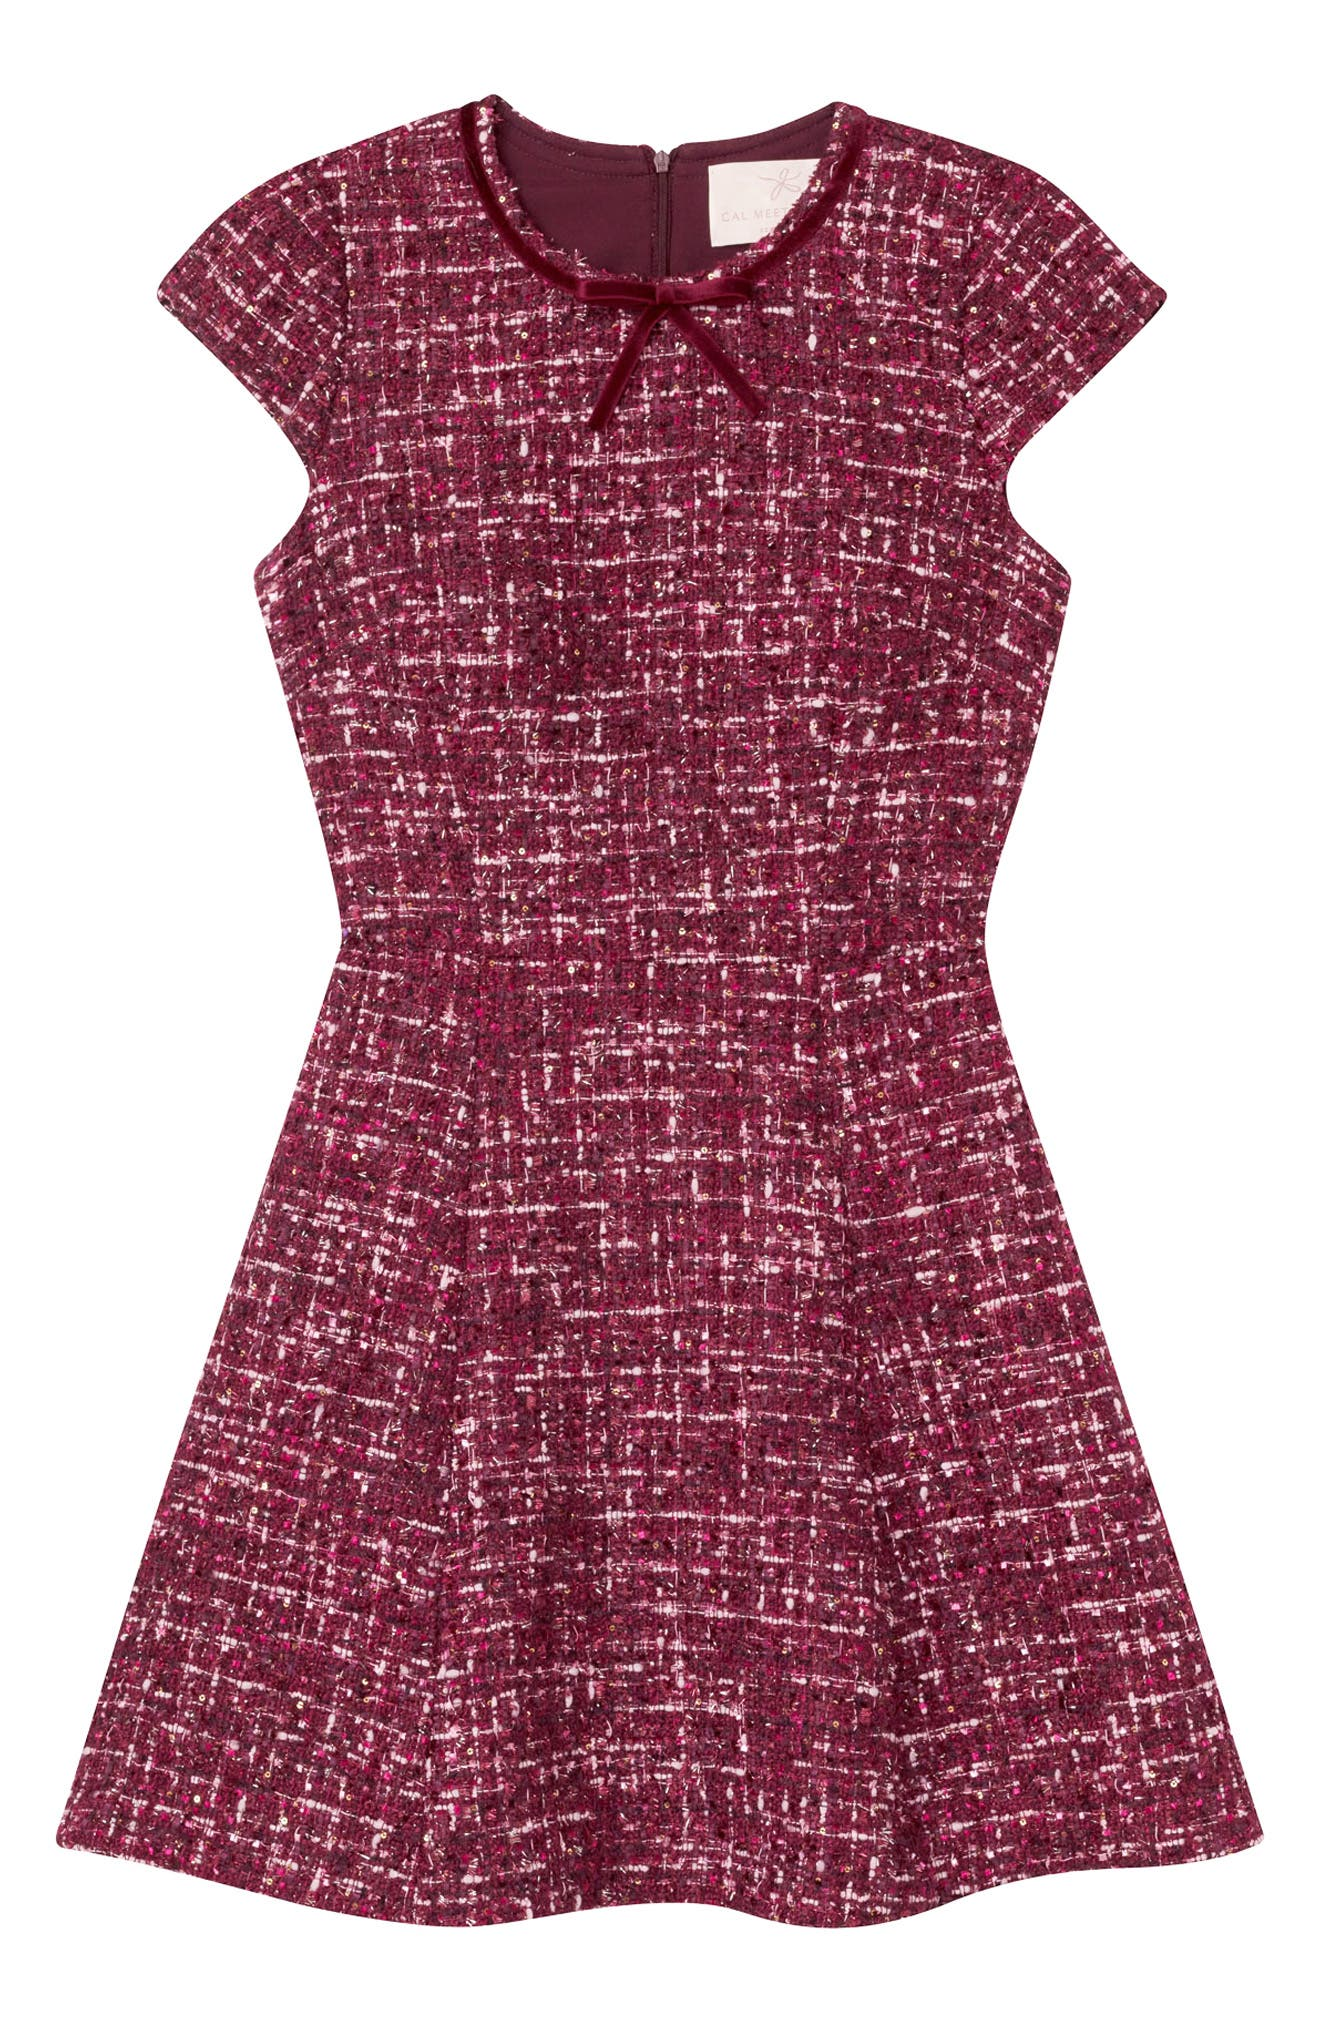 Nell Bouclé Dreams Tweed Fit & Flare Dress,                             Alternate thumbnail 3, color,                             WINE/ PINK